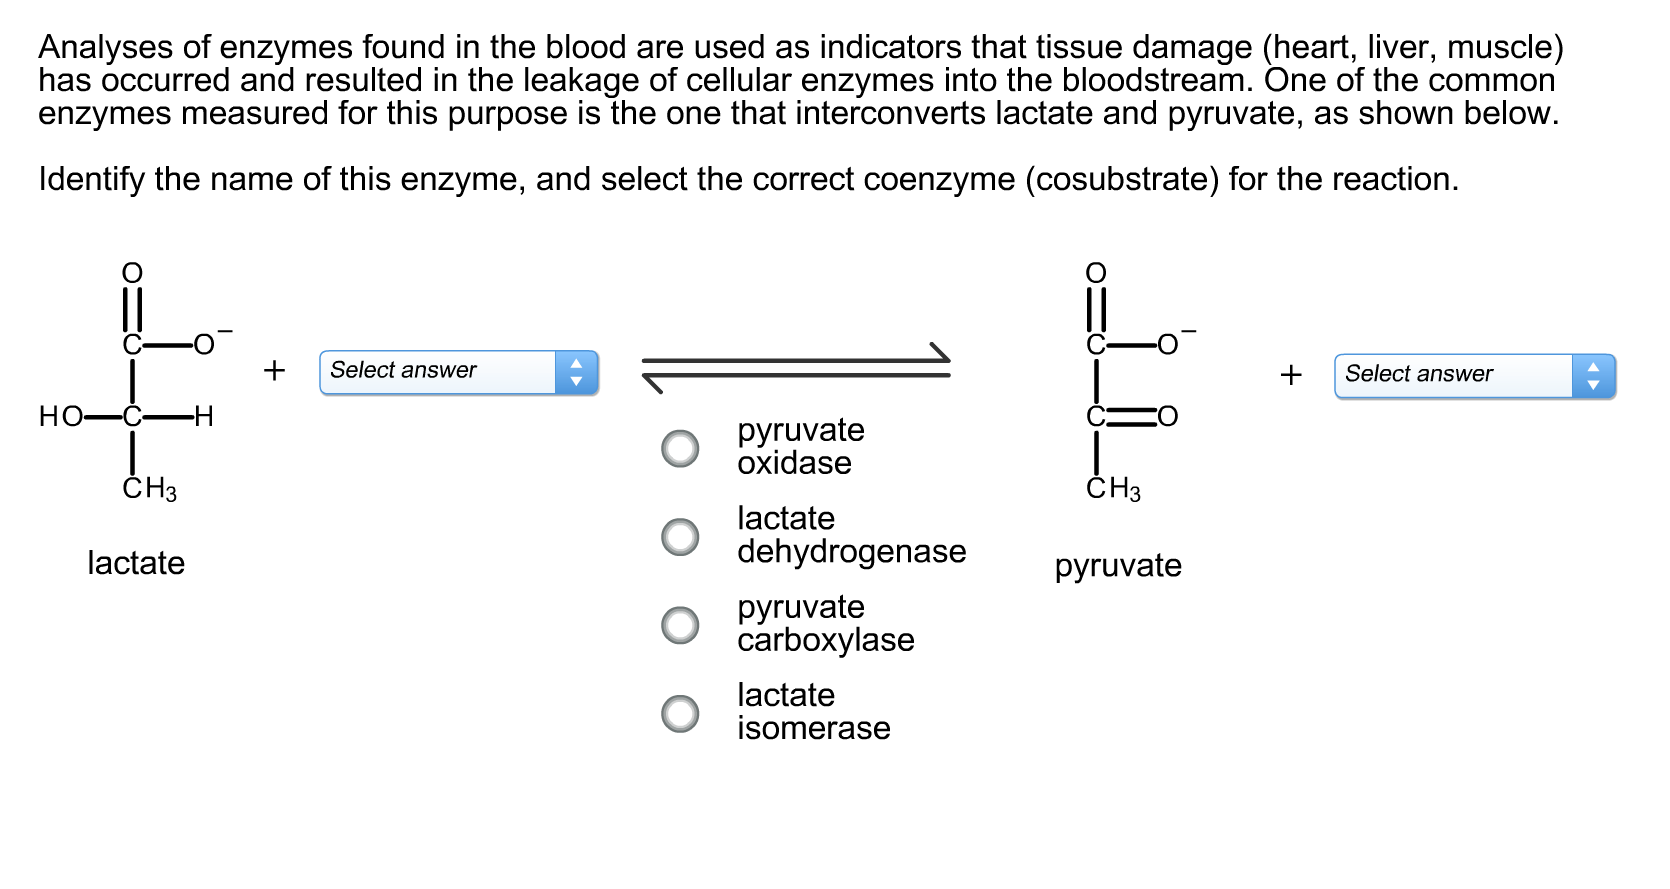 Solvedyses Of Enzymes Found In The Blood Are Used As